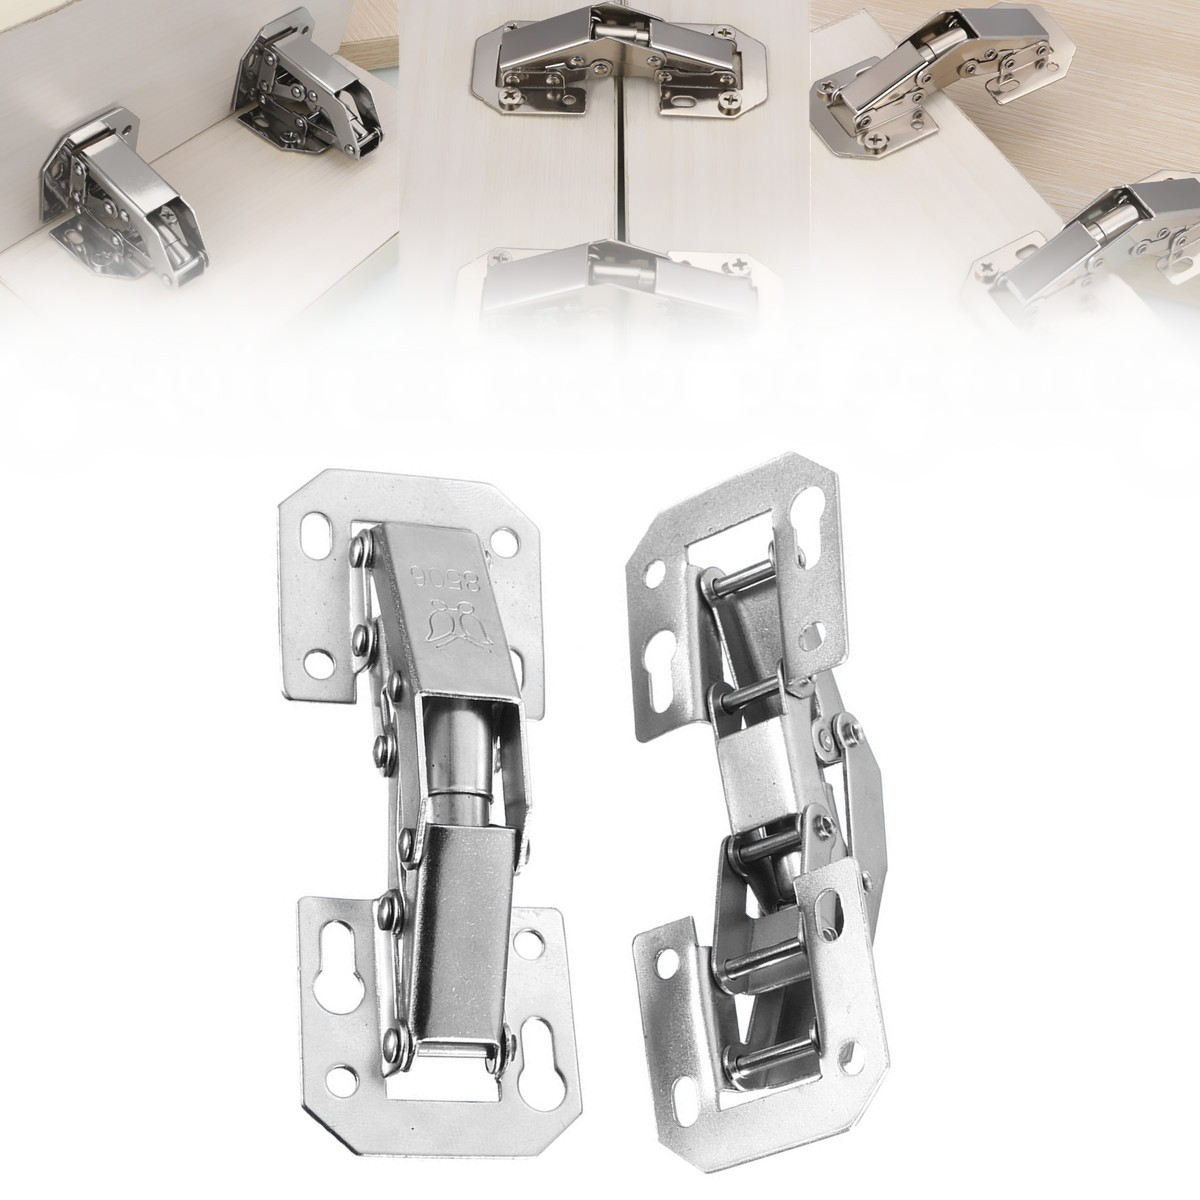 2x 90 Degree Concealed Door Hinges for Kitchen Cabinets Cupboard Hydraulic Furniture Damper Buffer Hinges Bridge Shaped2x 90 Degree Concealed Door Hinges for Kitchen Cabinets Cupboard Hydraulic Furniture Damper Buffer Hinges Bridge Shaped